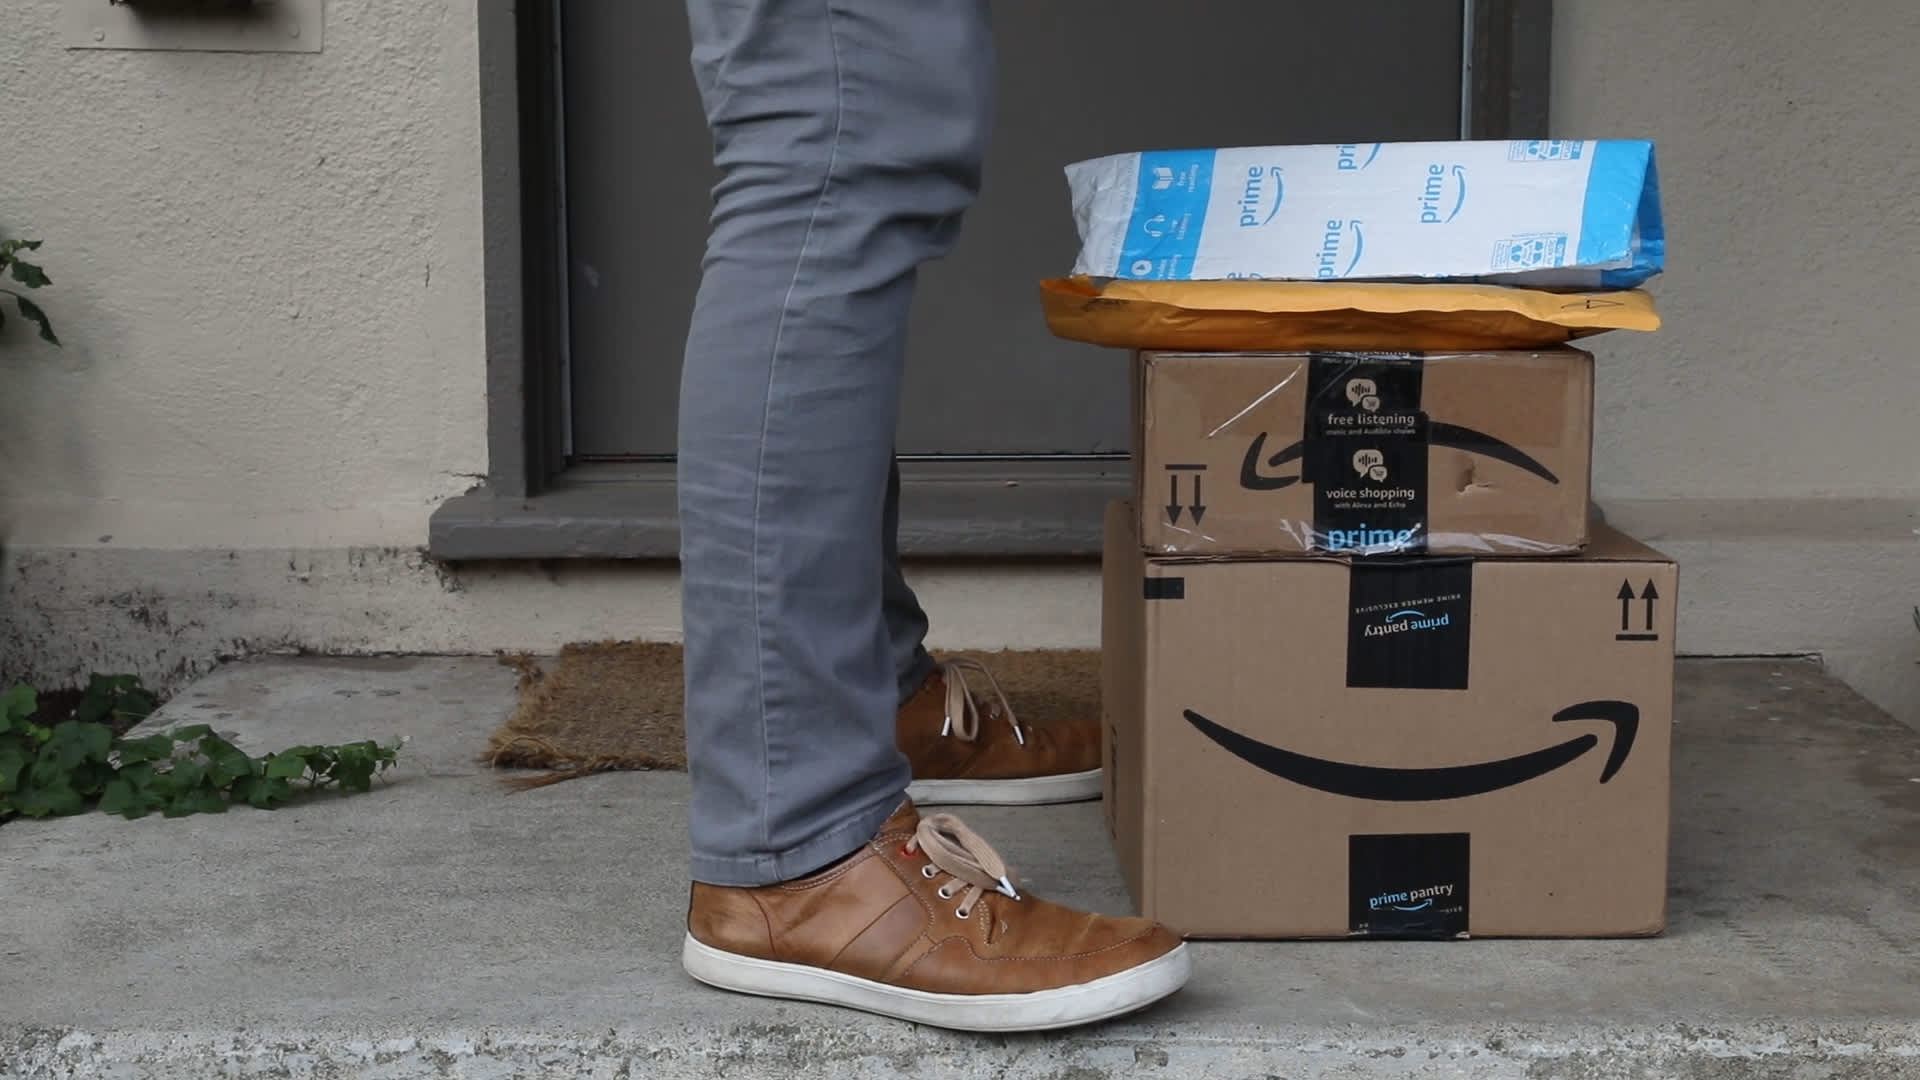 10 brick-and-mortar stores that will match Amazon's lower prices